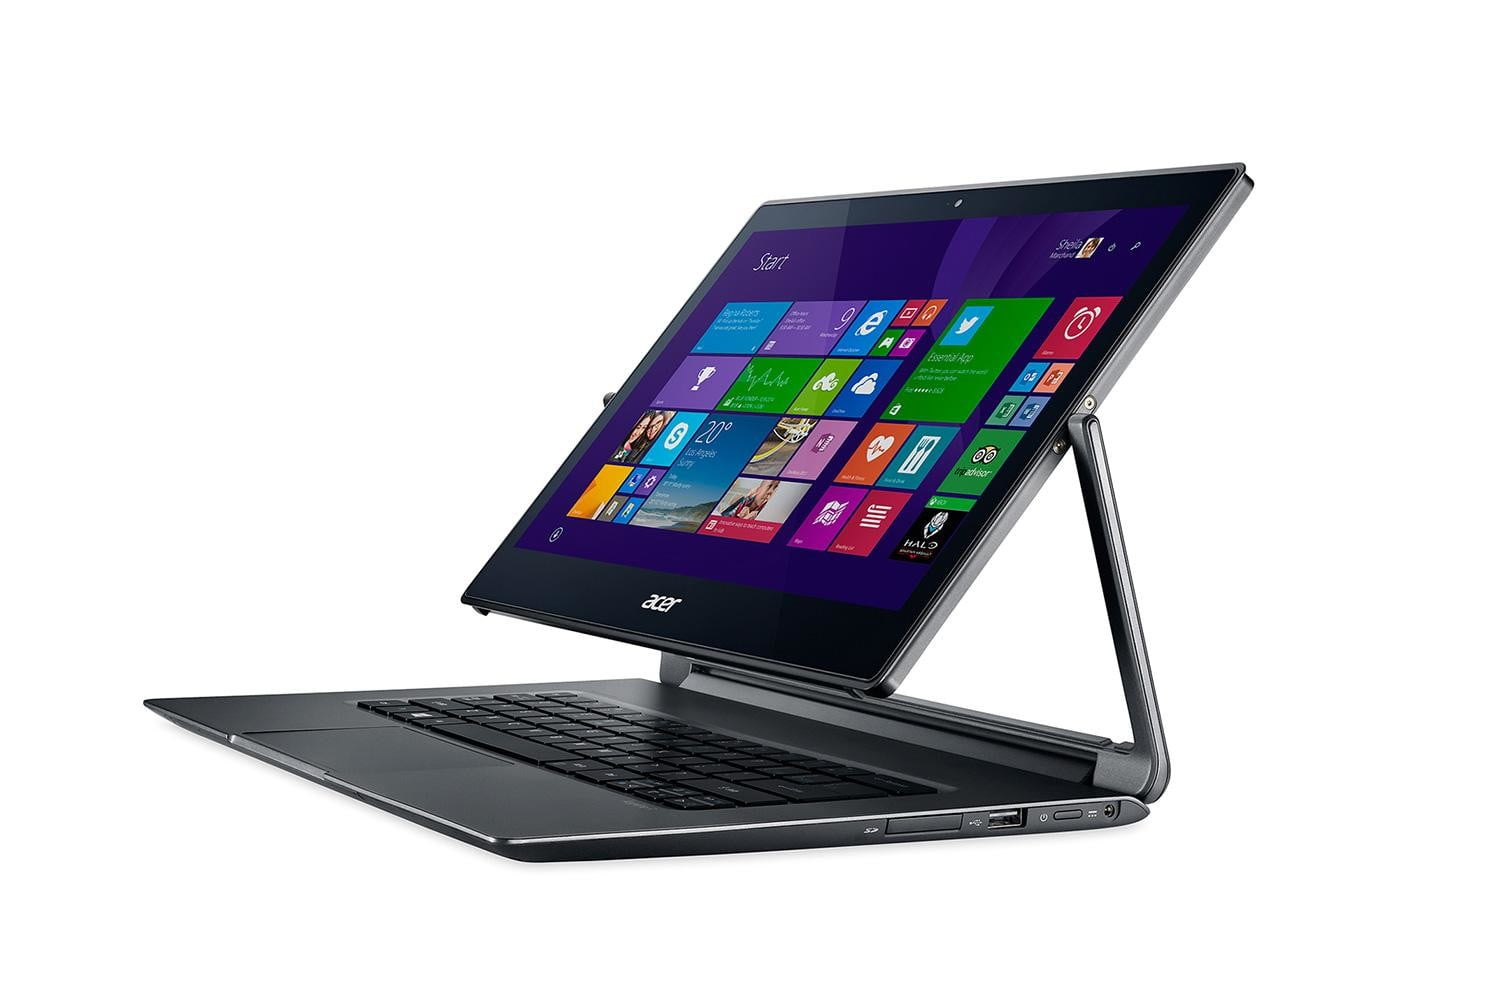 Acer-Aspire-R13-press-image